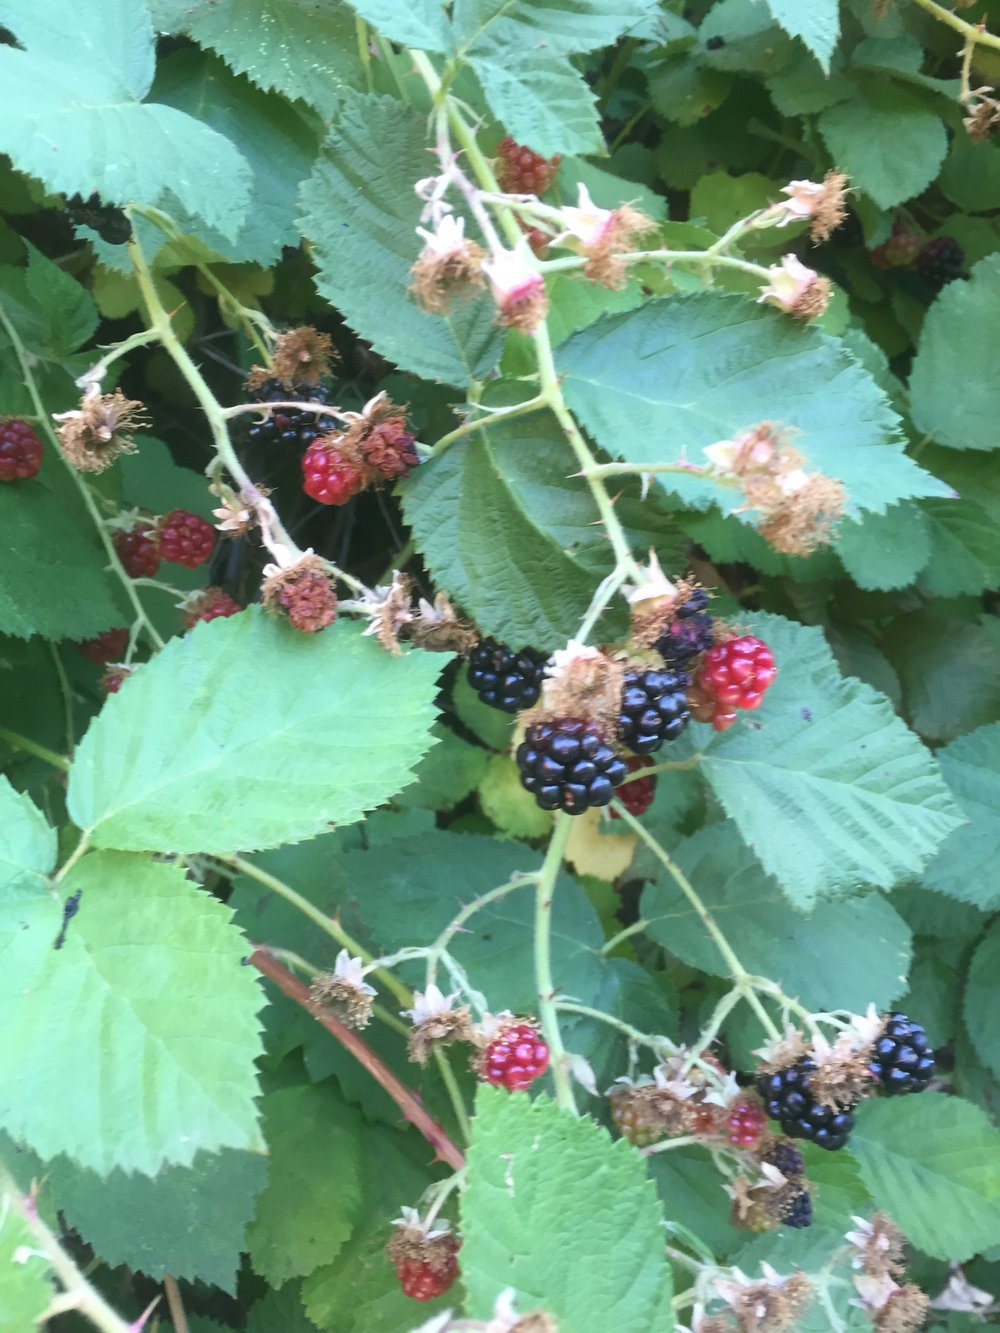 Yummy blackberries growing on trail